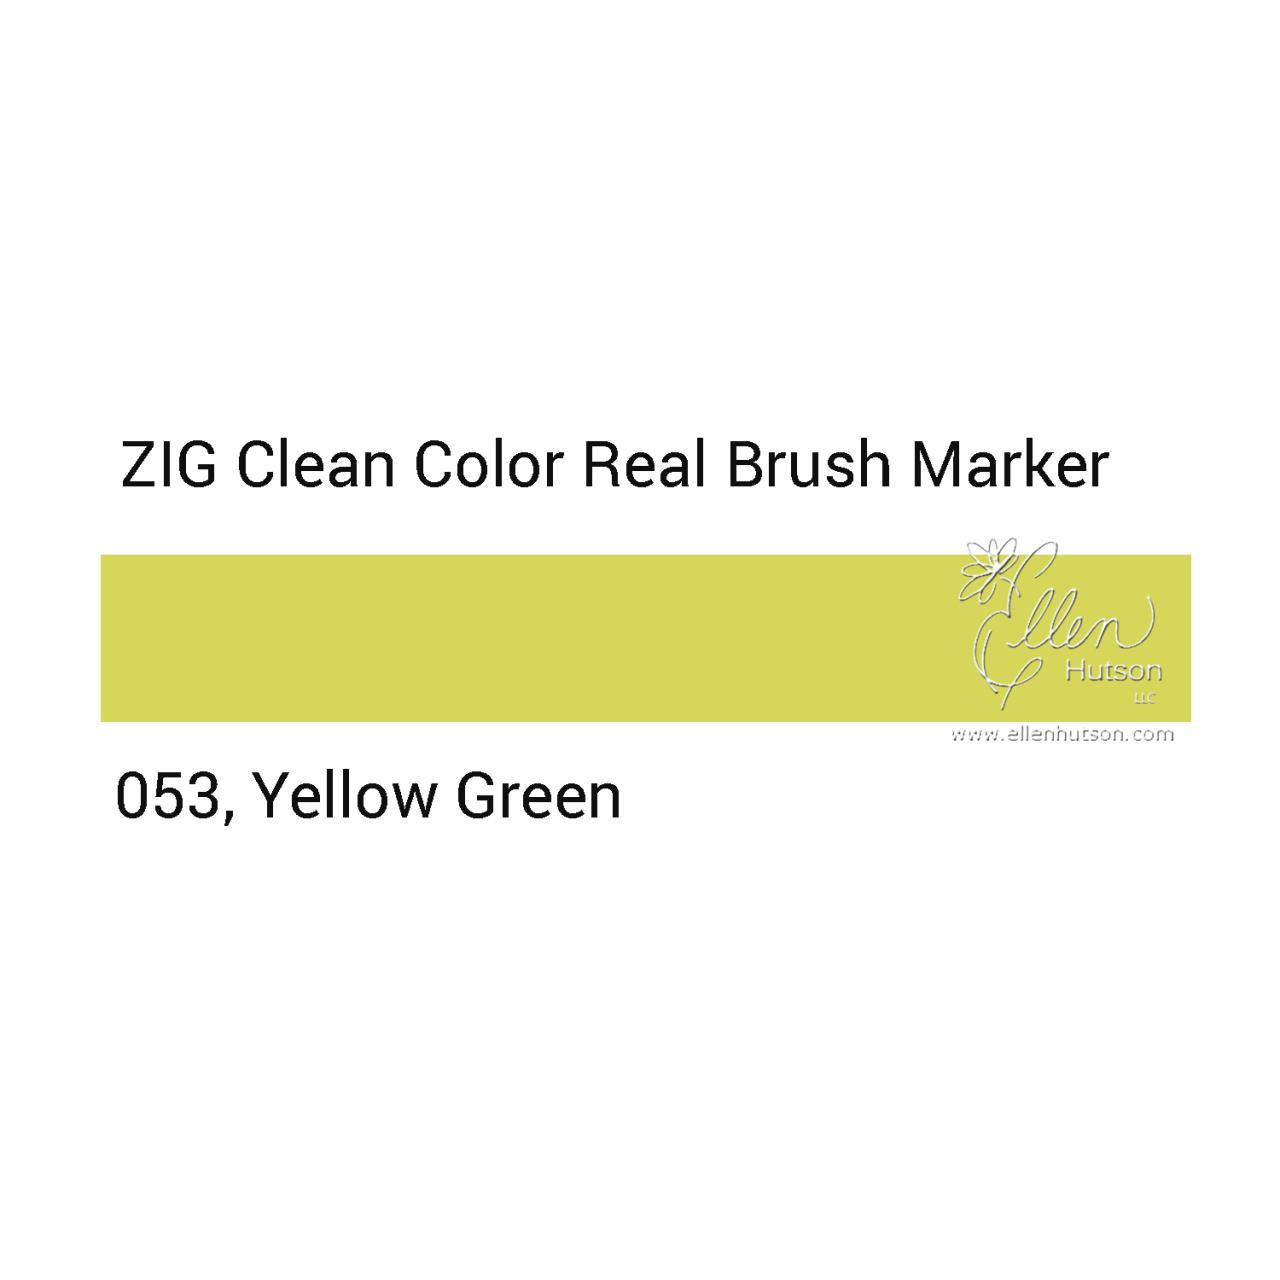 053 - Yellow Green, ZIG Clean Color Real Brush Marker -